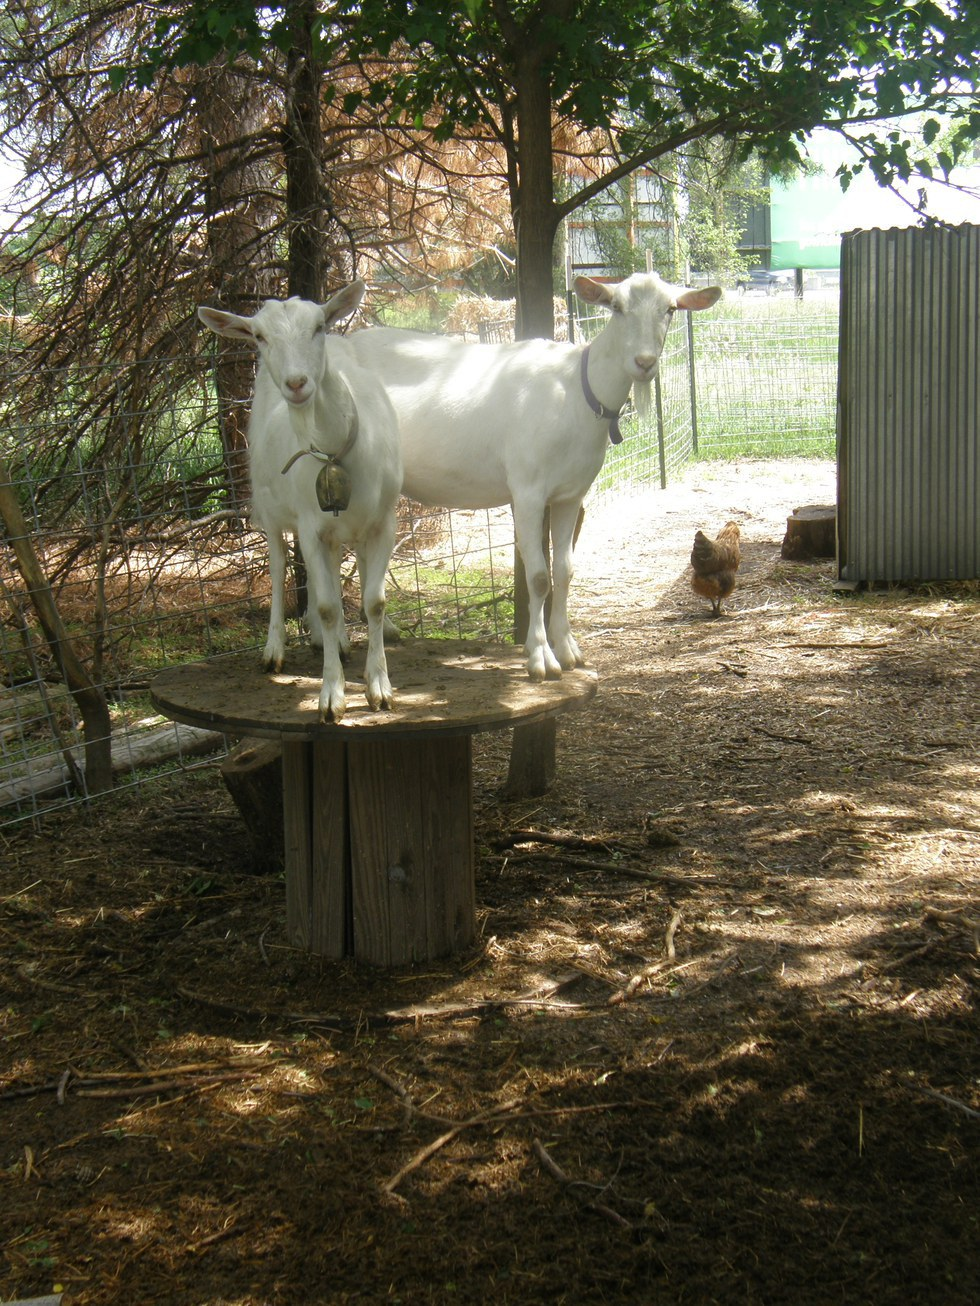 15 reasons why goats are awesome